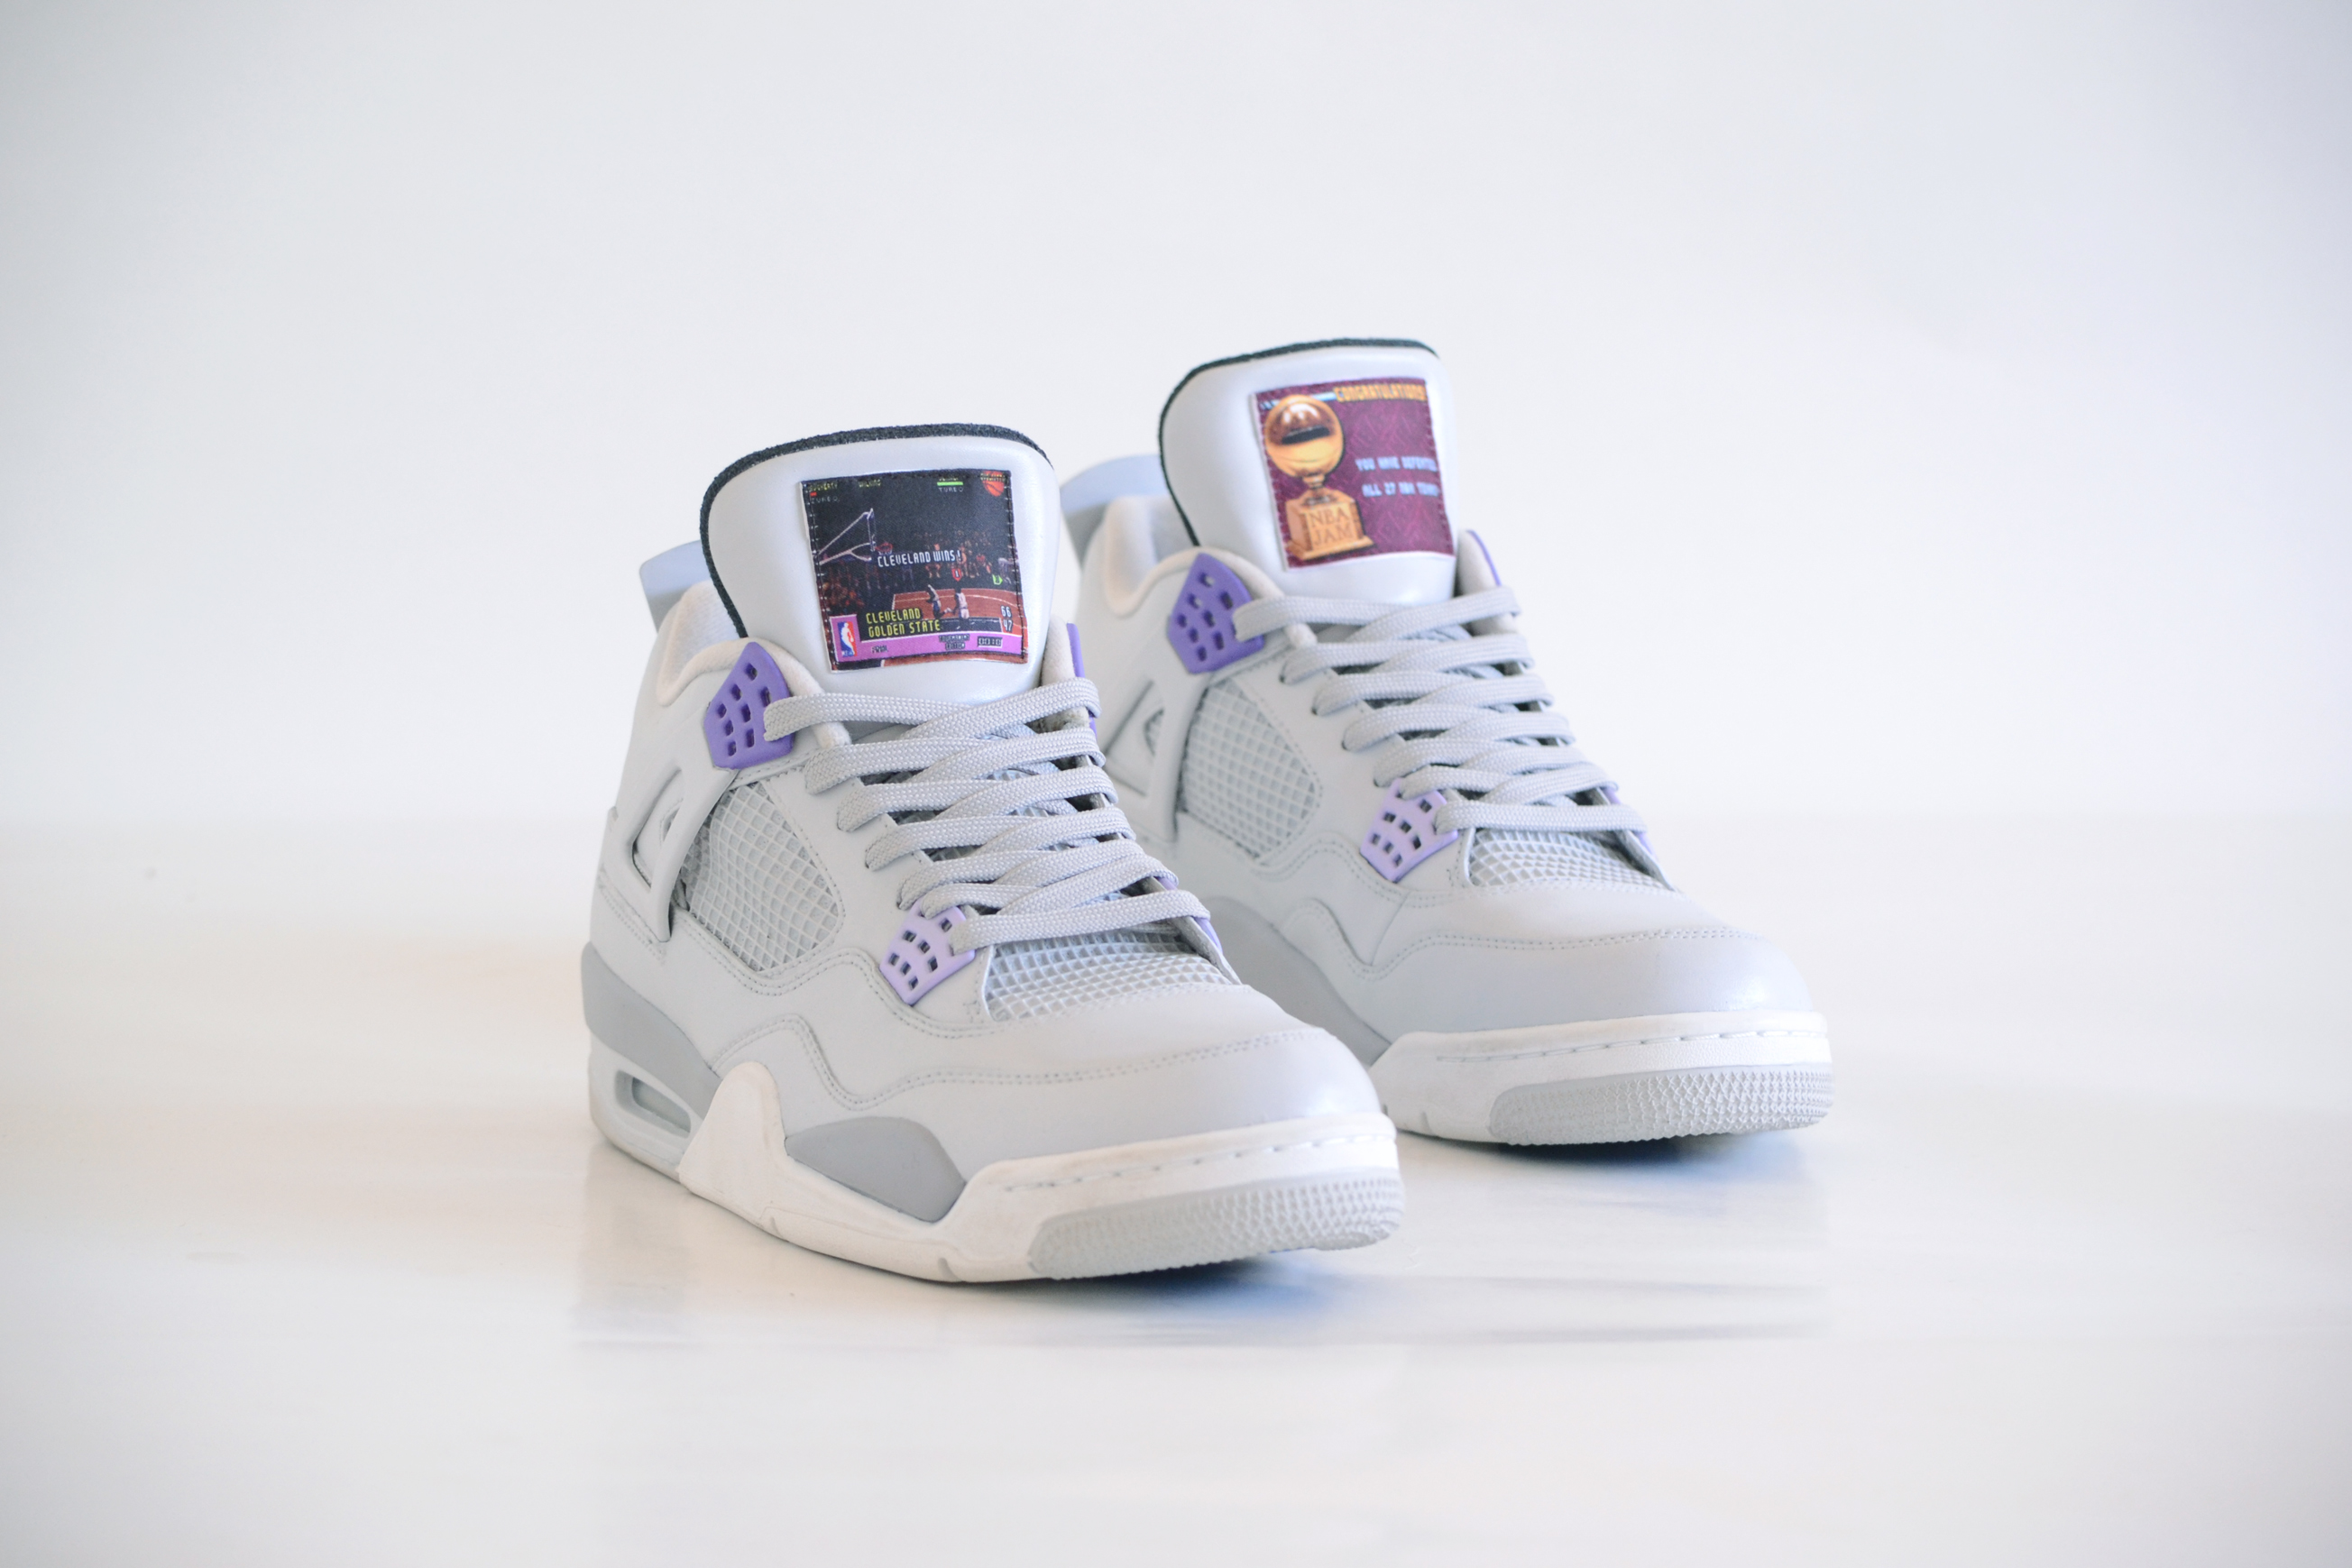 b770c7f7cfbb75 air jordan 4 x snes 1 · Basketball   Customs   Jordan Brand   Kicks Off  Court   Lifestyle ...